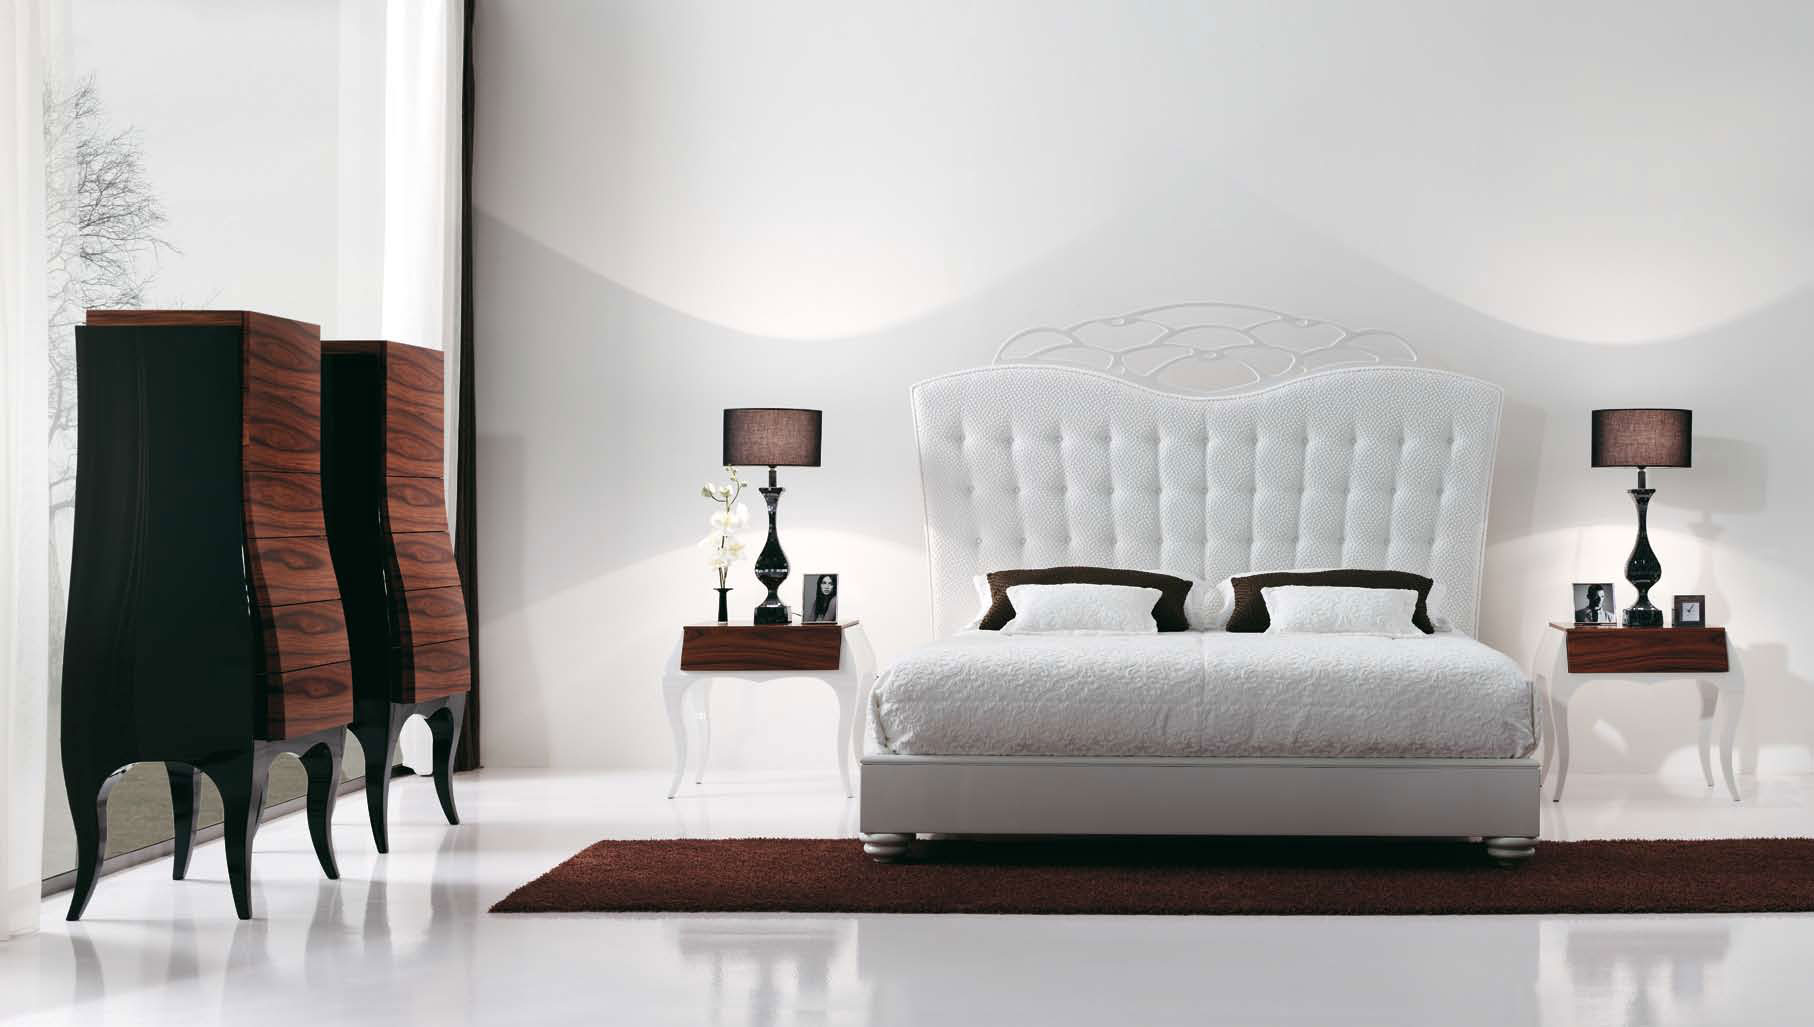 Remarkable White Bedroom Furniture Design Ideas 1814 x 1027 · 118 kB · jpeg